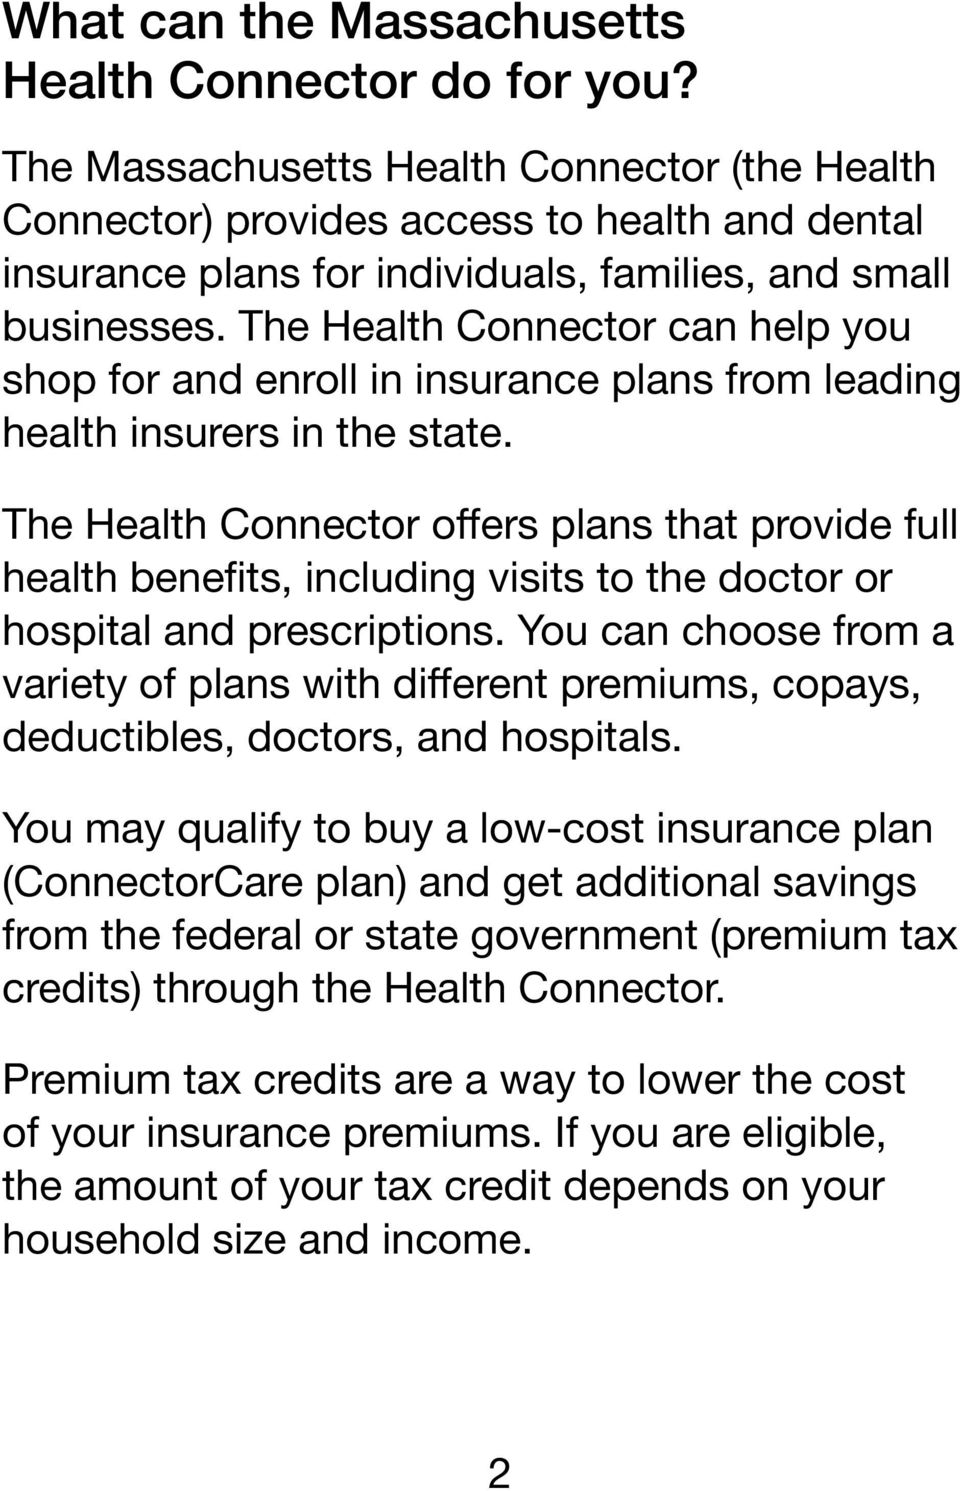 The Health Connector can help you shop for and enroll in insurance plans from leading health insurers in the state.